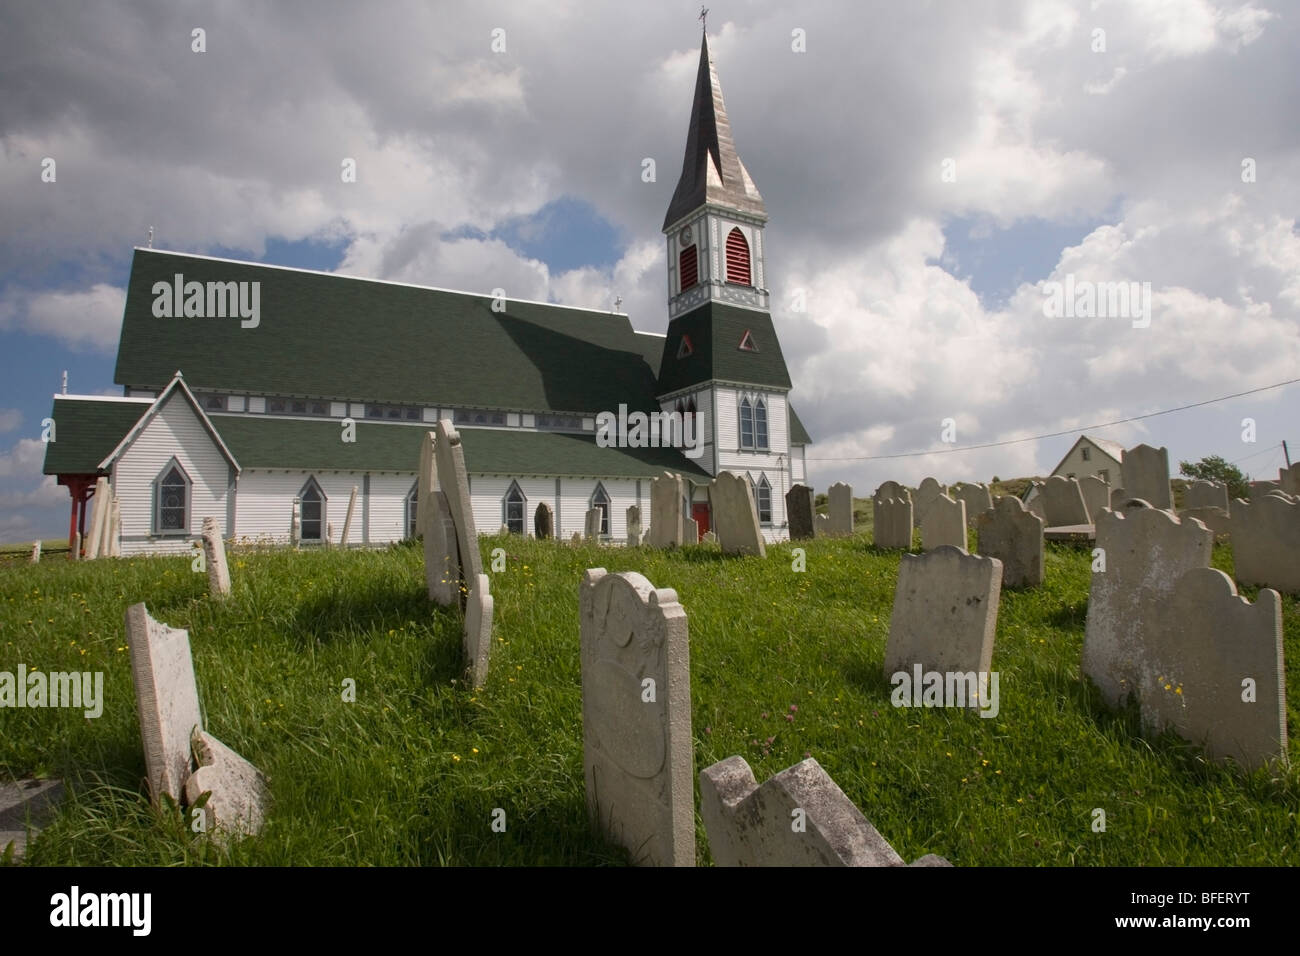 St. Paul's Anglican Church and surrounding graveyard, Trinity, Newfoundland, Canada - Stock Image